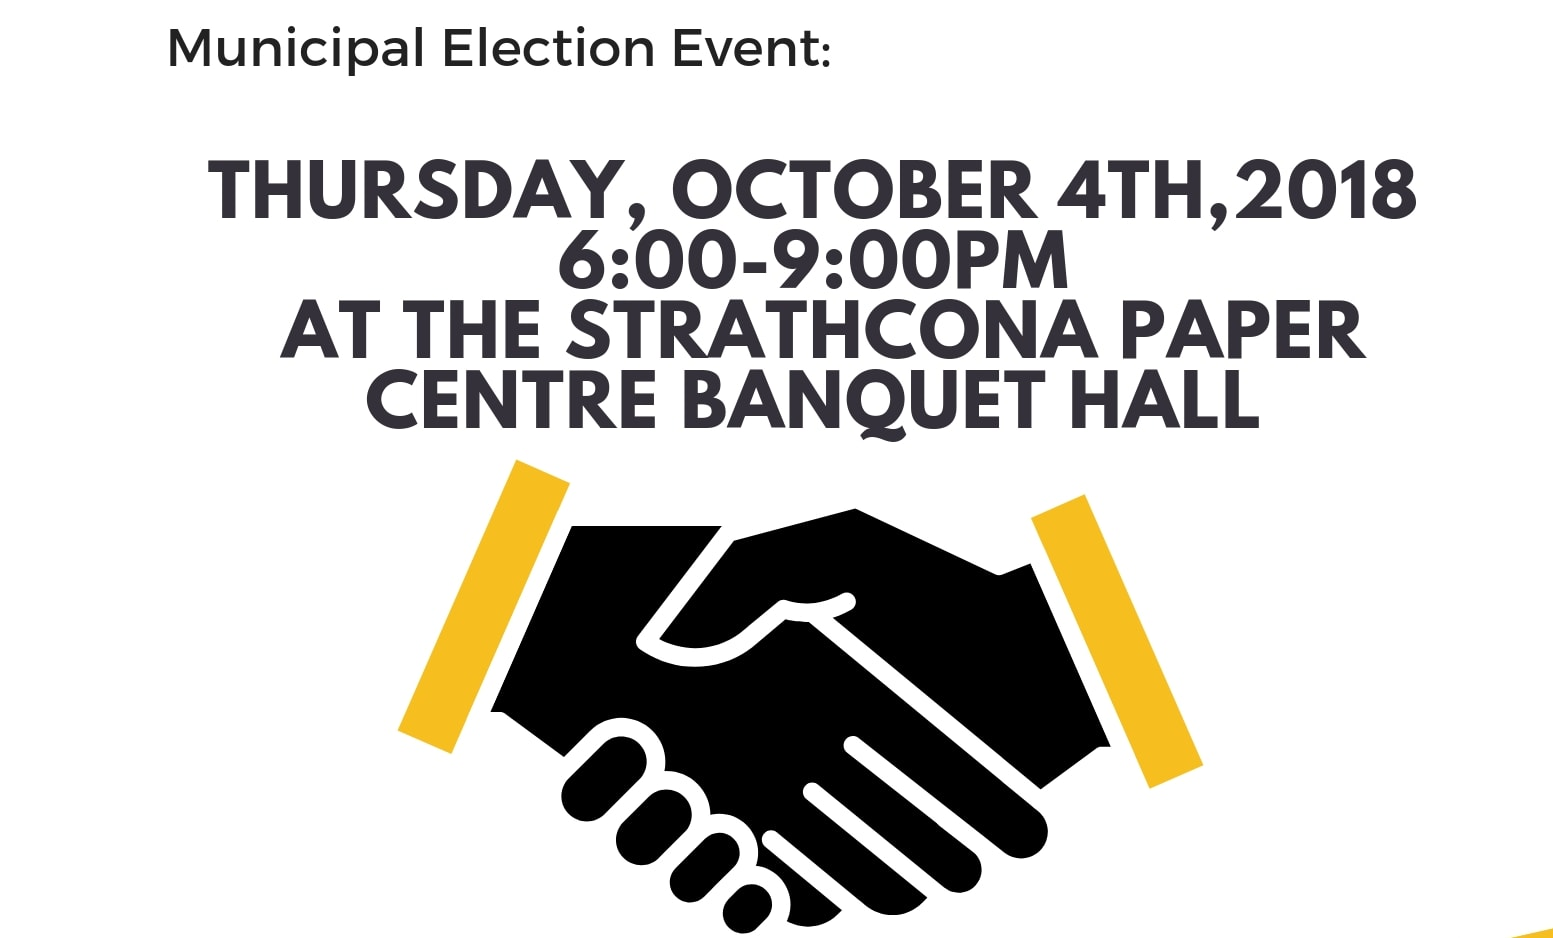 October-4th-Election-Meeting(1)-w1553.jpg